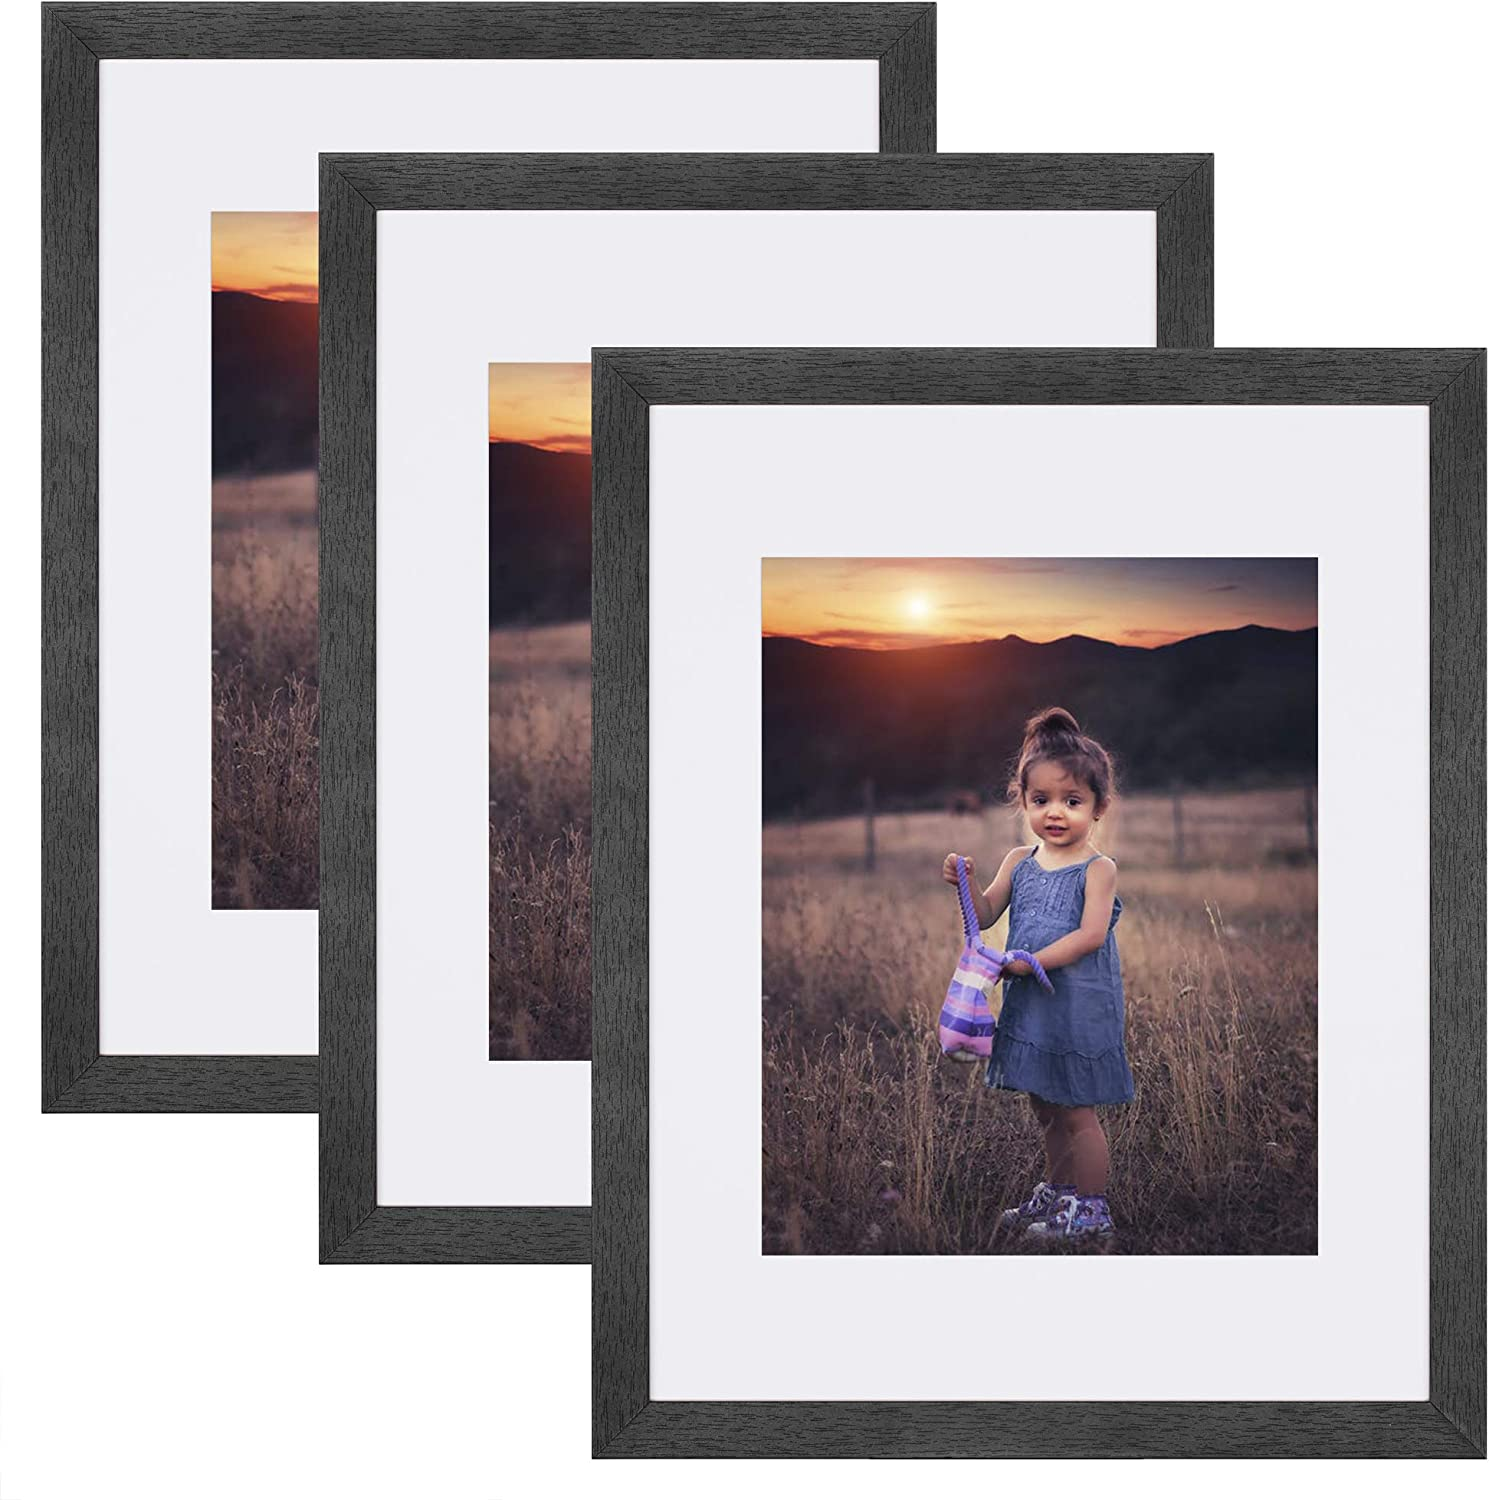 Upsimples Home 11x14 Picture Frame, Real Glass and Composite Wood for Wall, Display 8x10 Frame With Mat or 11x14 Without Mat, Hanging Hardware Included, Set of 3,Black